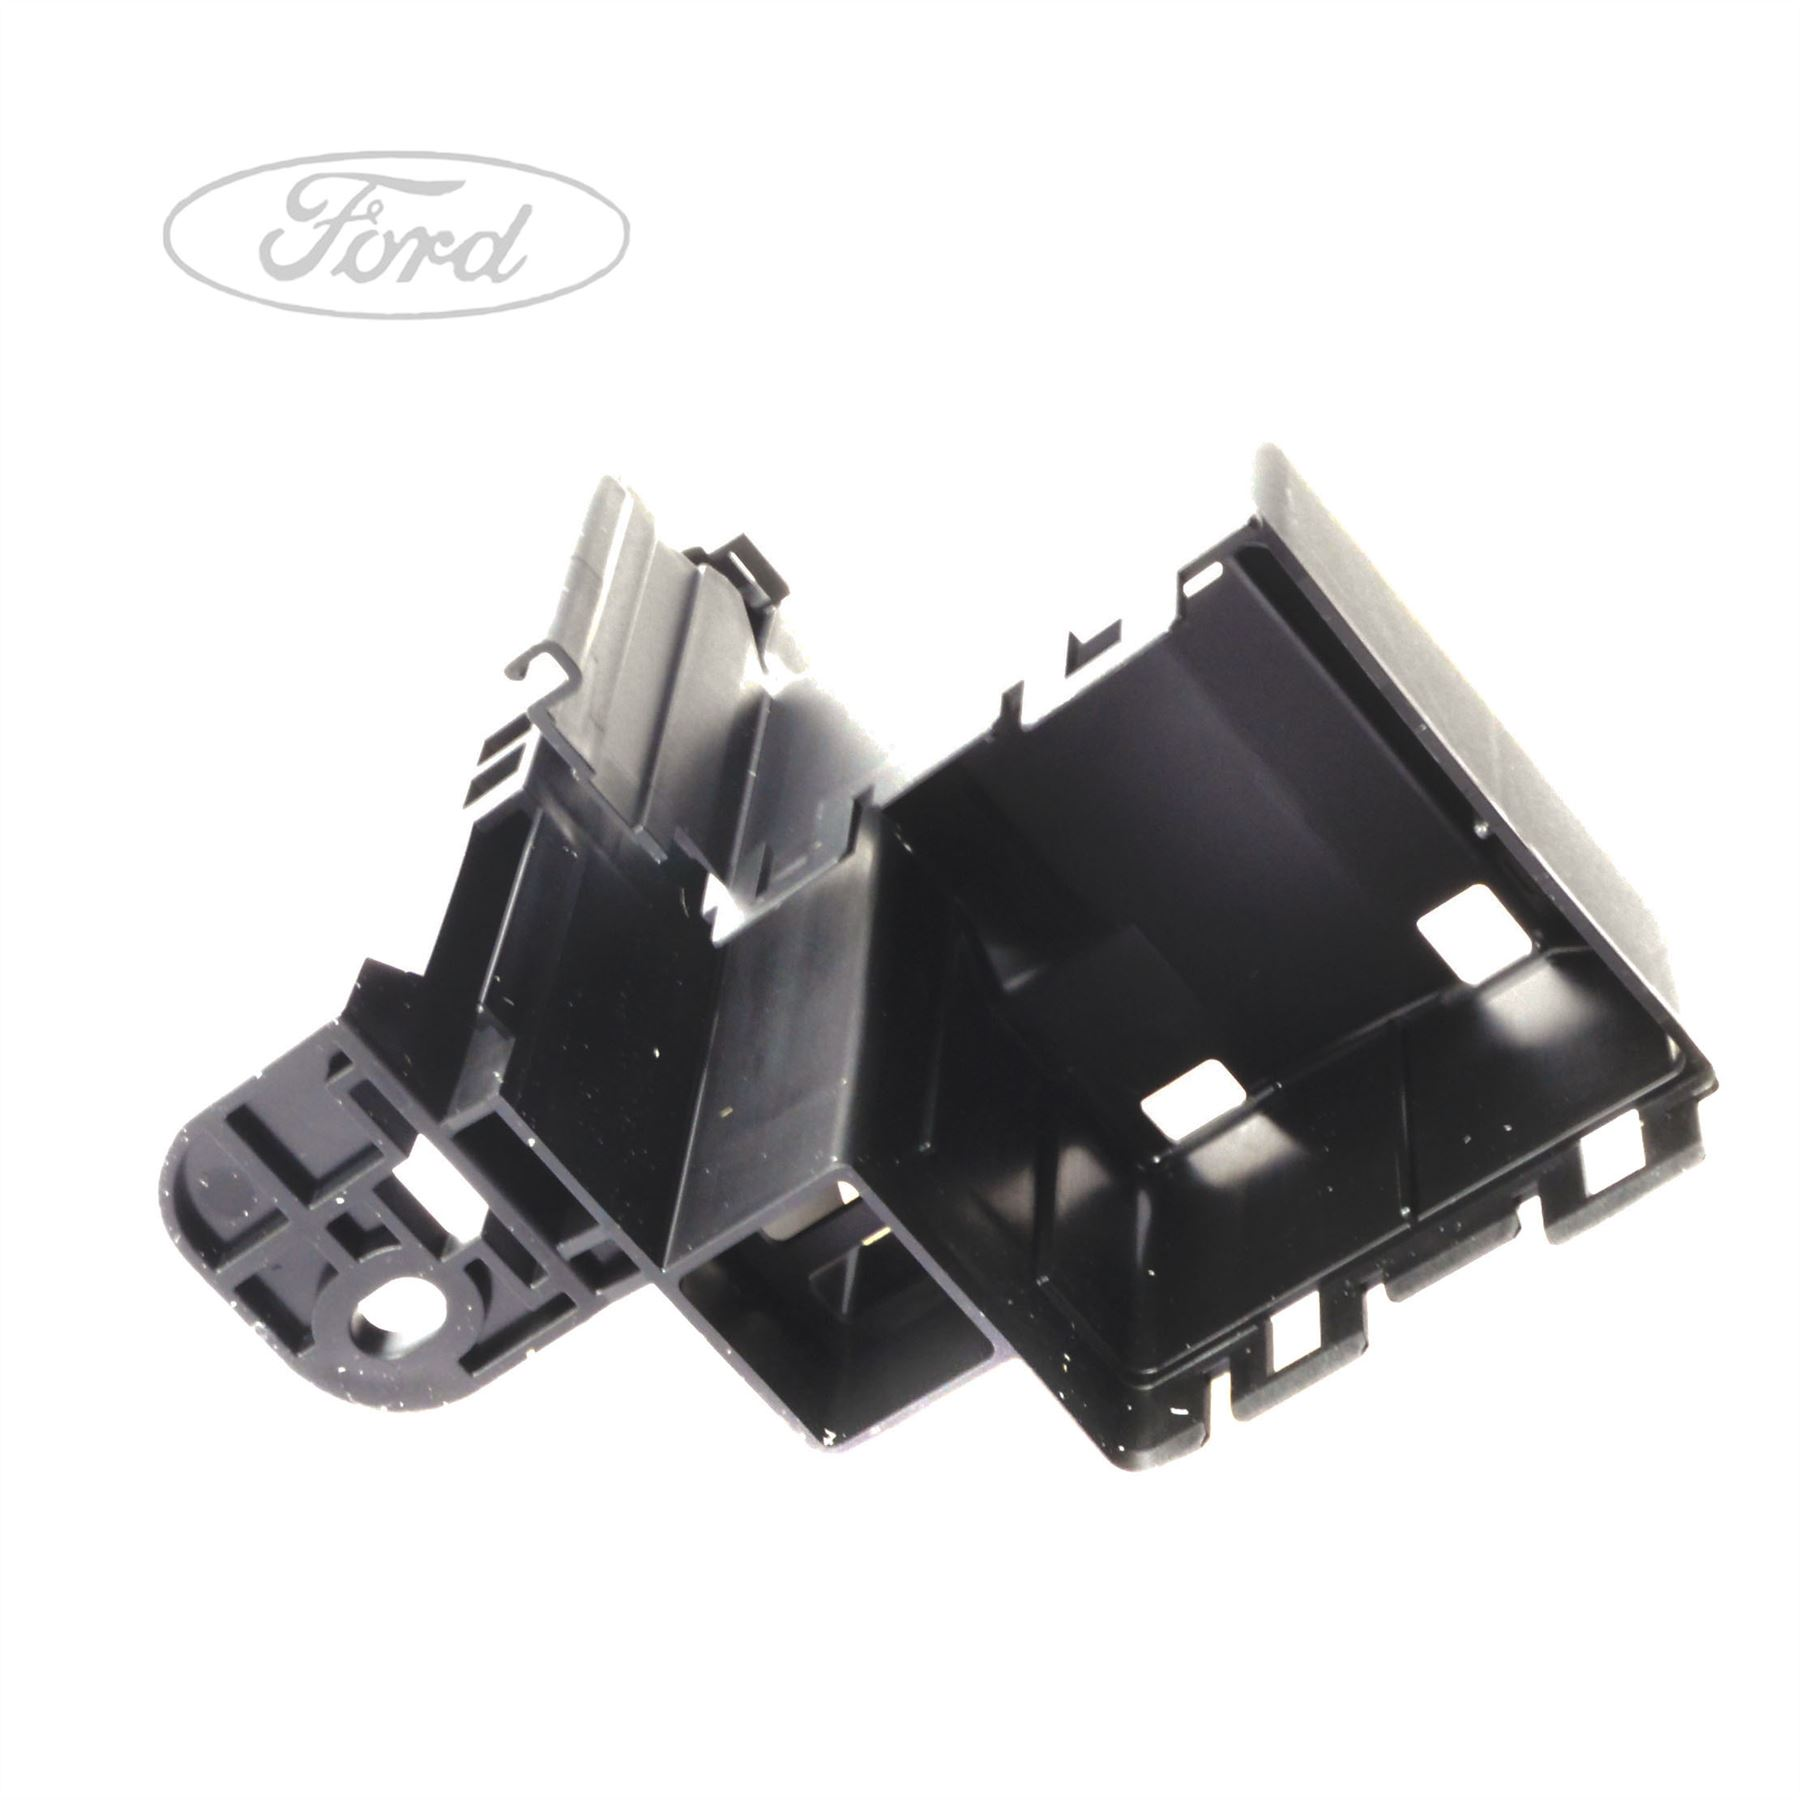 hight resolution of ford capri mk3 fuse box 23 wiring diagram images ford cortina usa ford escort mk1 fuse box diagram